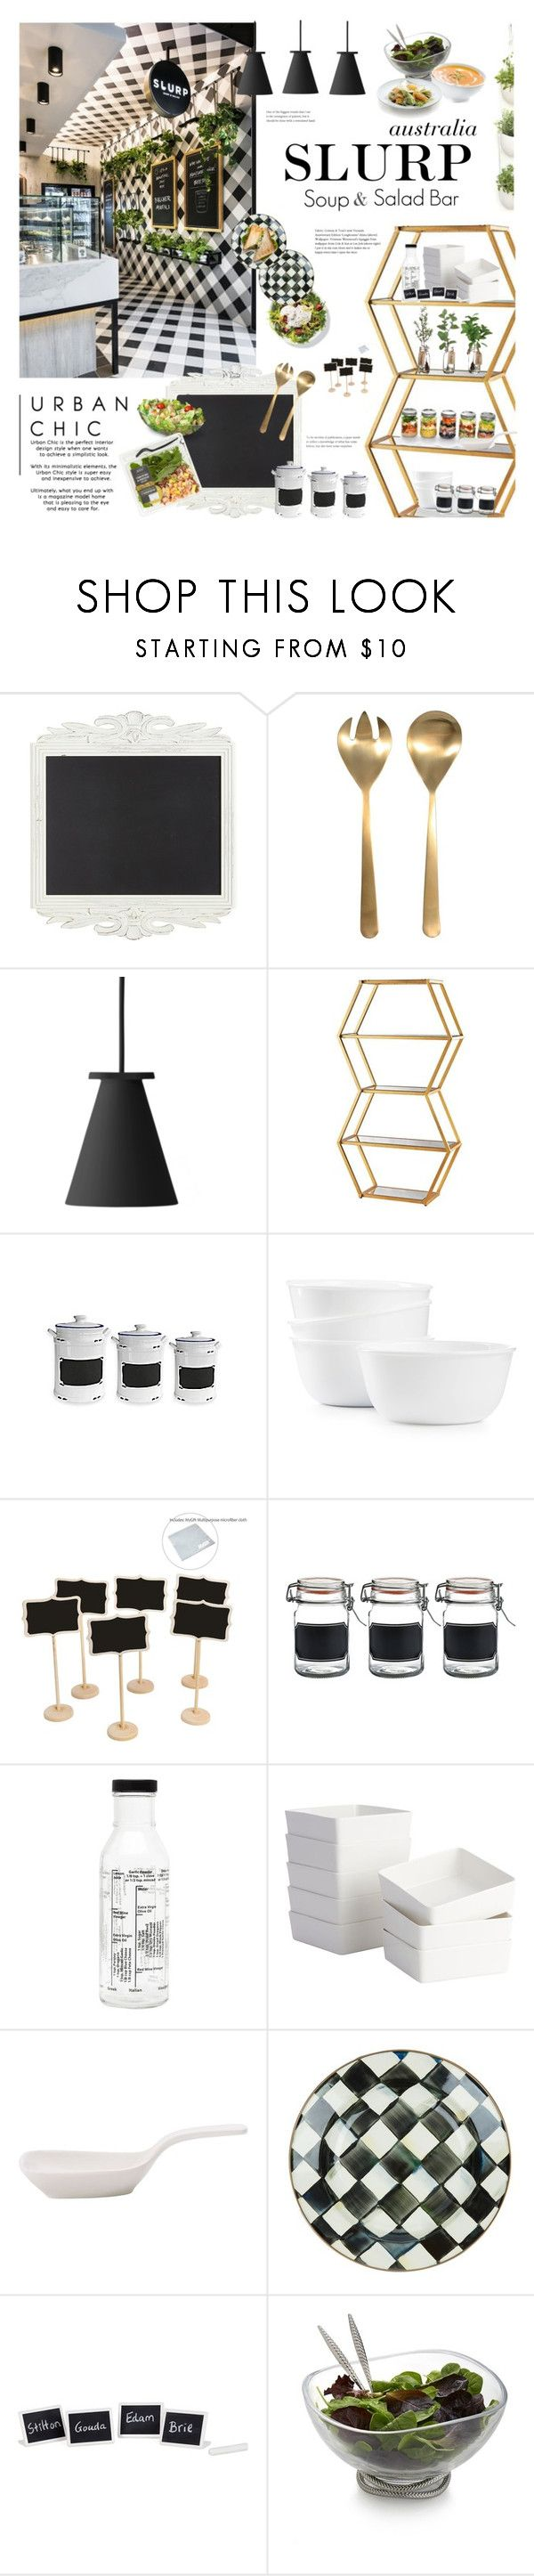 """Australian Soup & Salad Bar"" by happilyjynxed ❤ liked on Polyvore featuring interior, interiors, interior design, home, home decor, interior decorating, Pier 1 Imports, Menu, Vanguard and American Atelier"